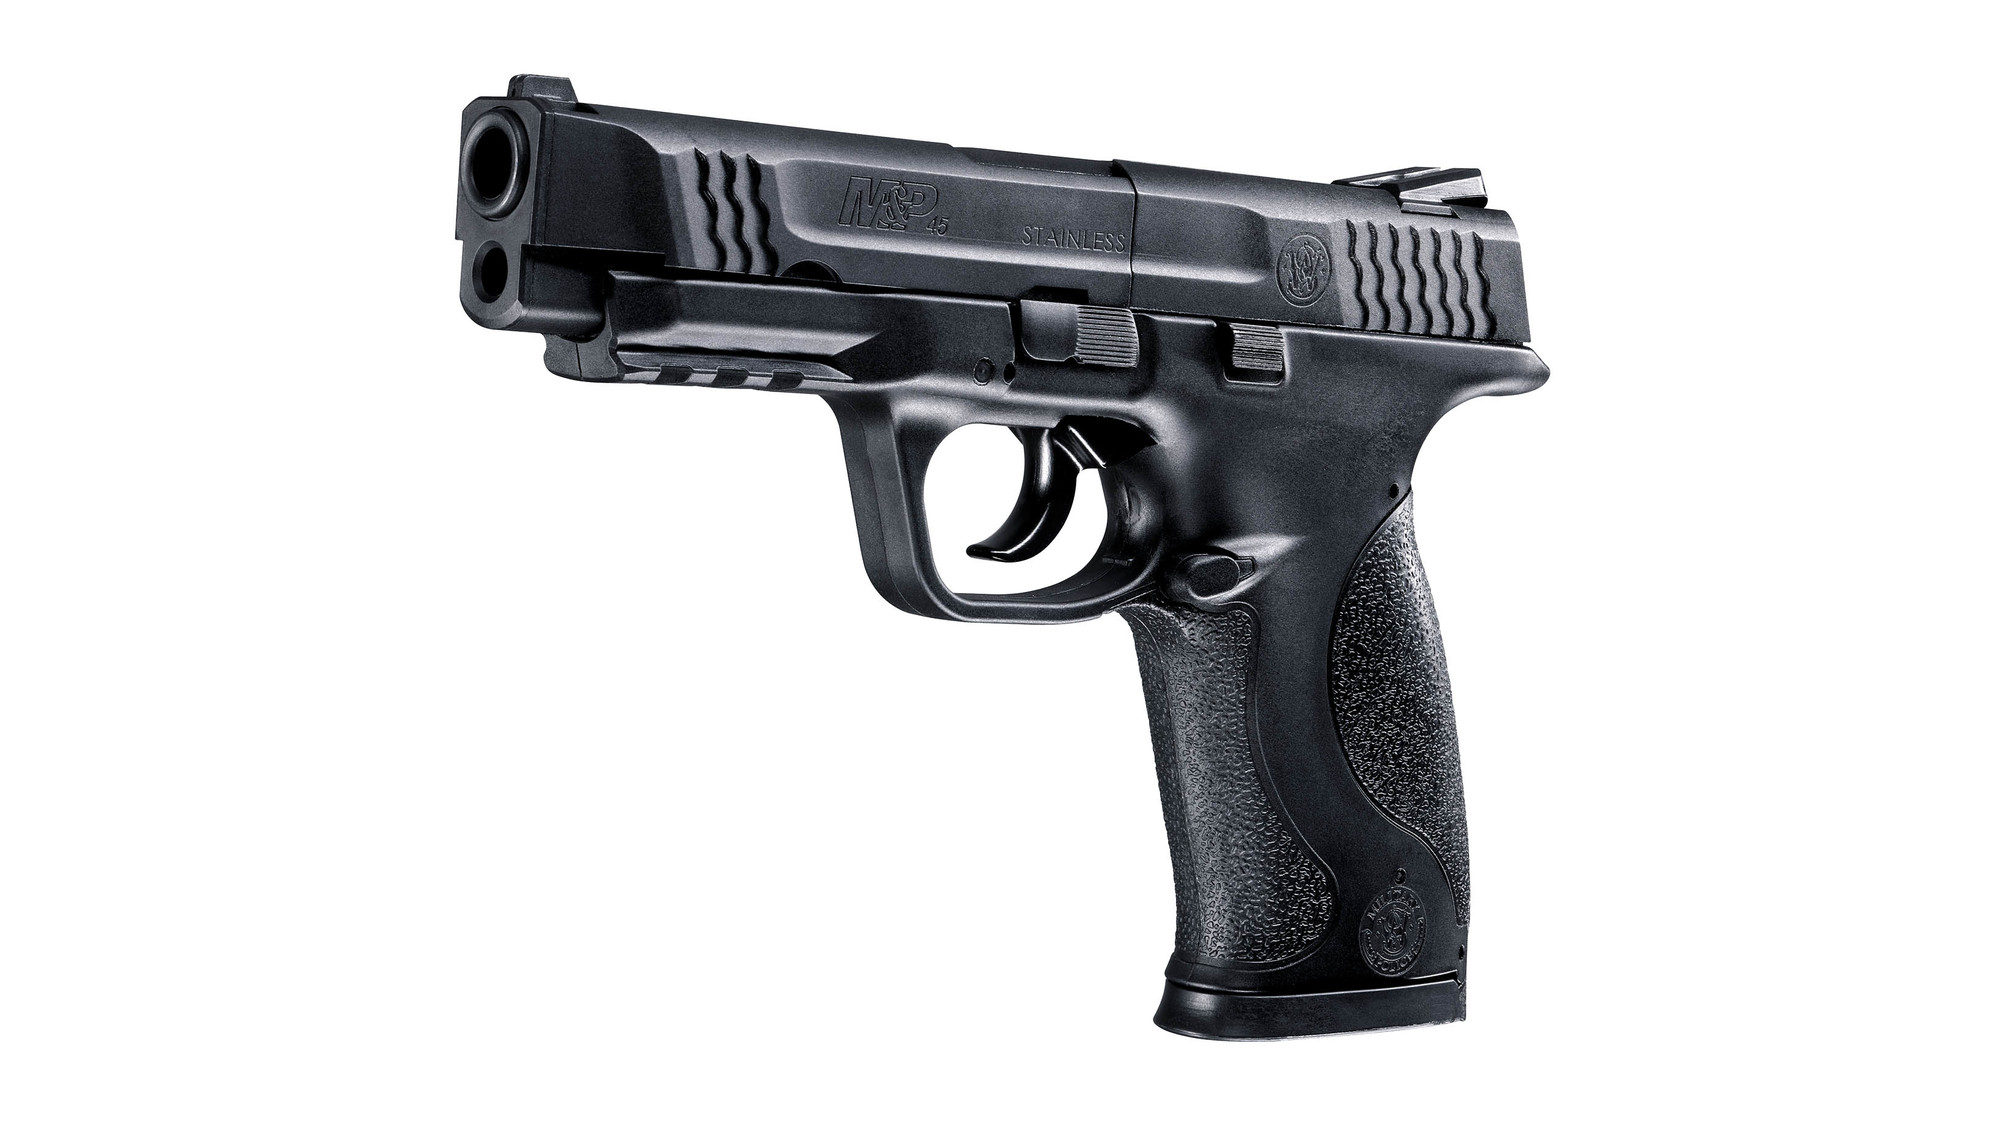 Smith & Wesson M&P 45 CO2 Air Pistol